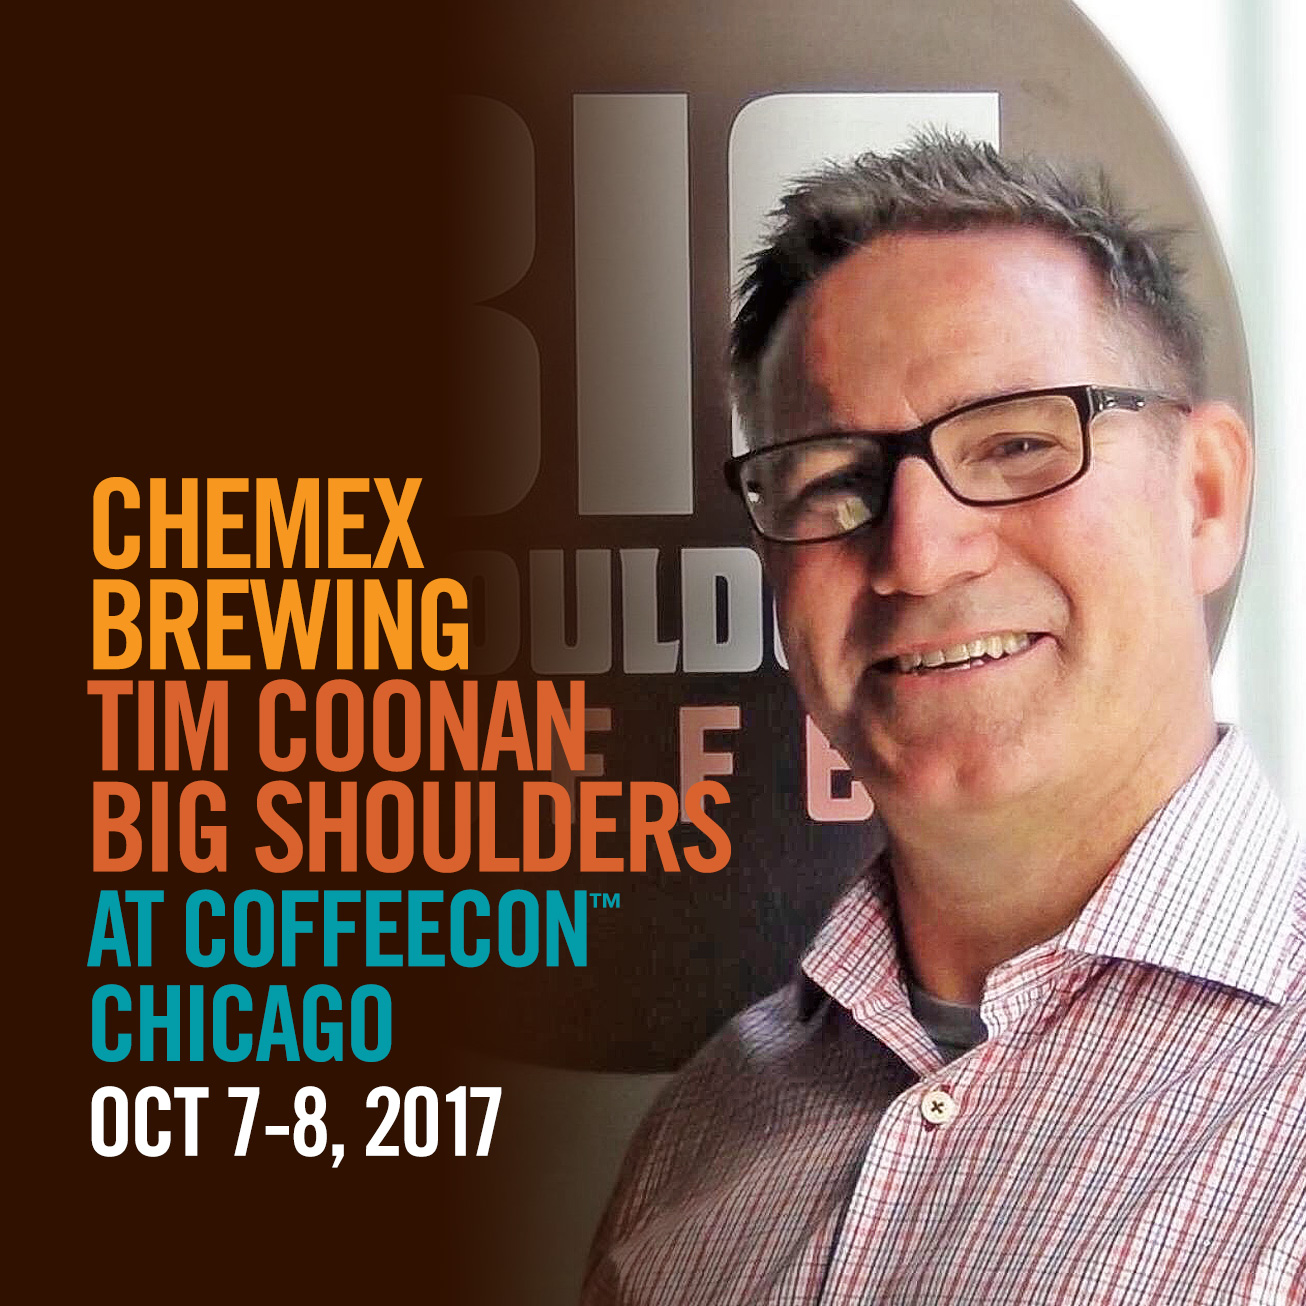 Chemex Brewing with Tim Coonan at CoffeeConChi 2017